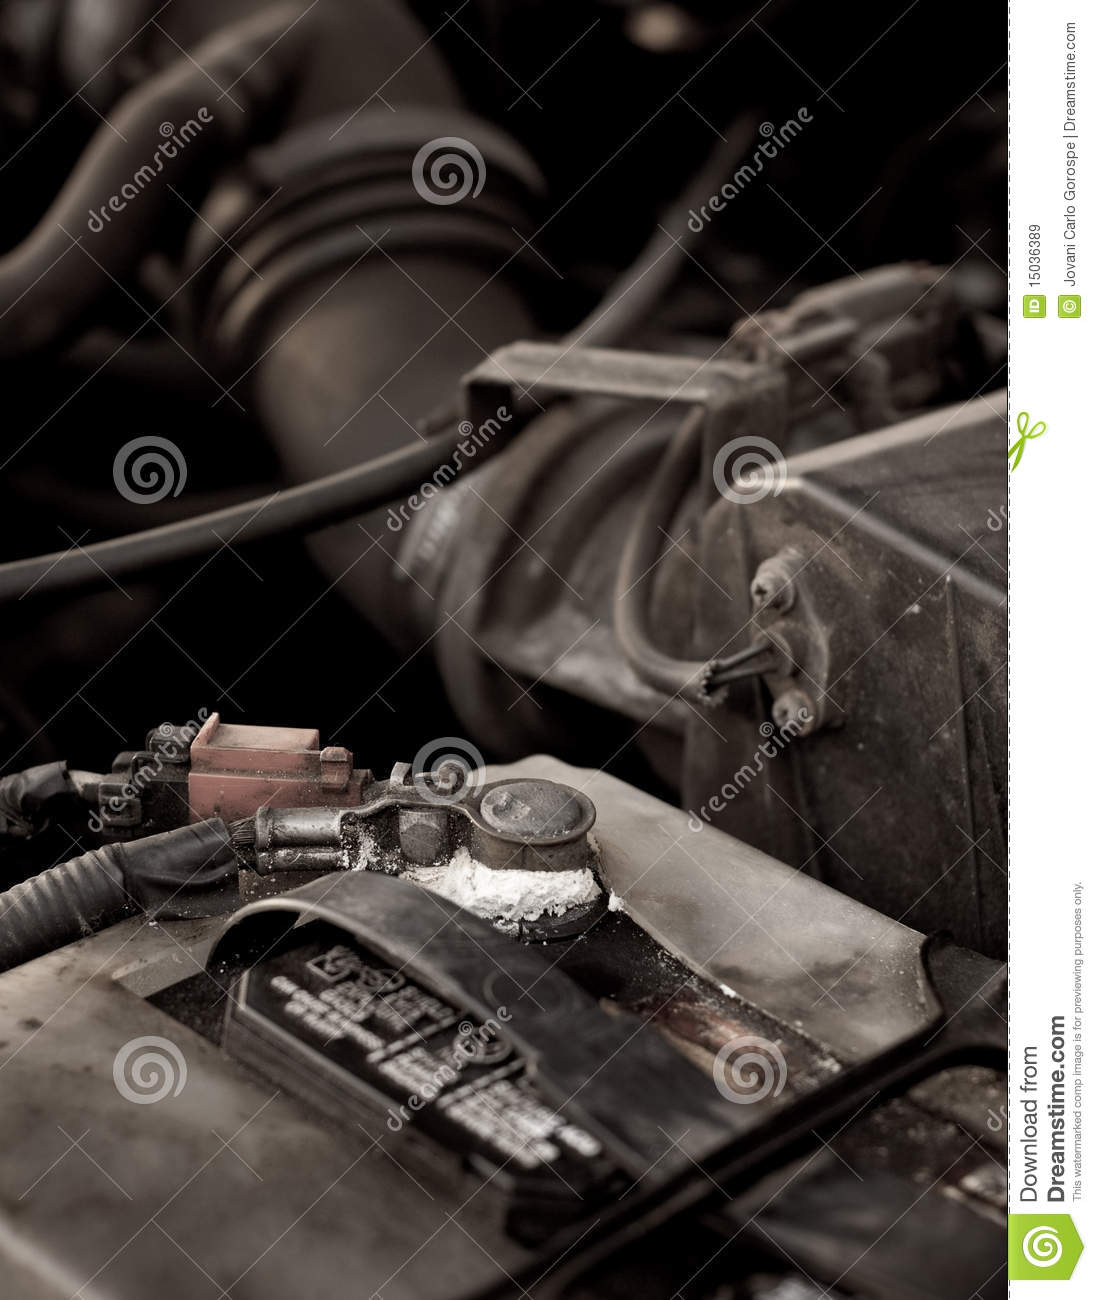 how to avoid corrosion on battery terminals